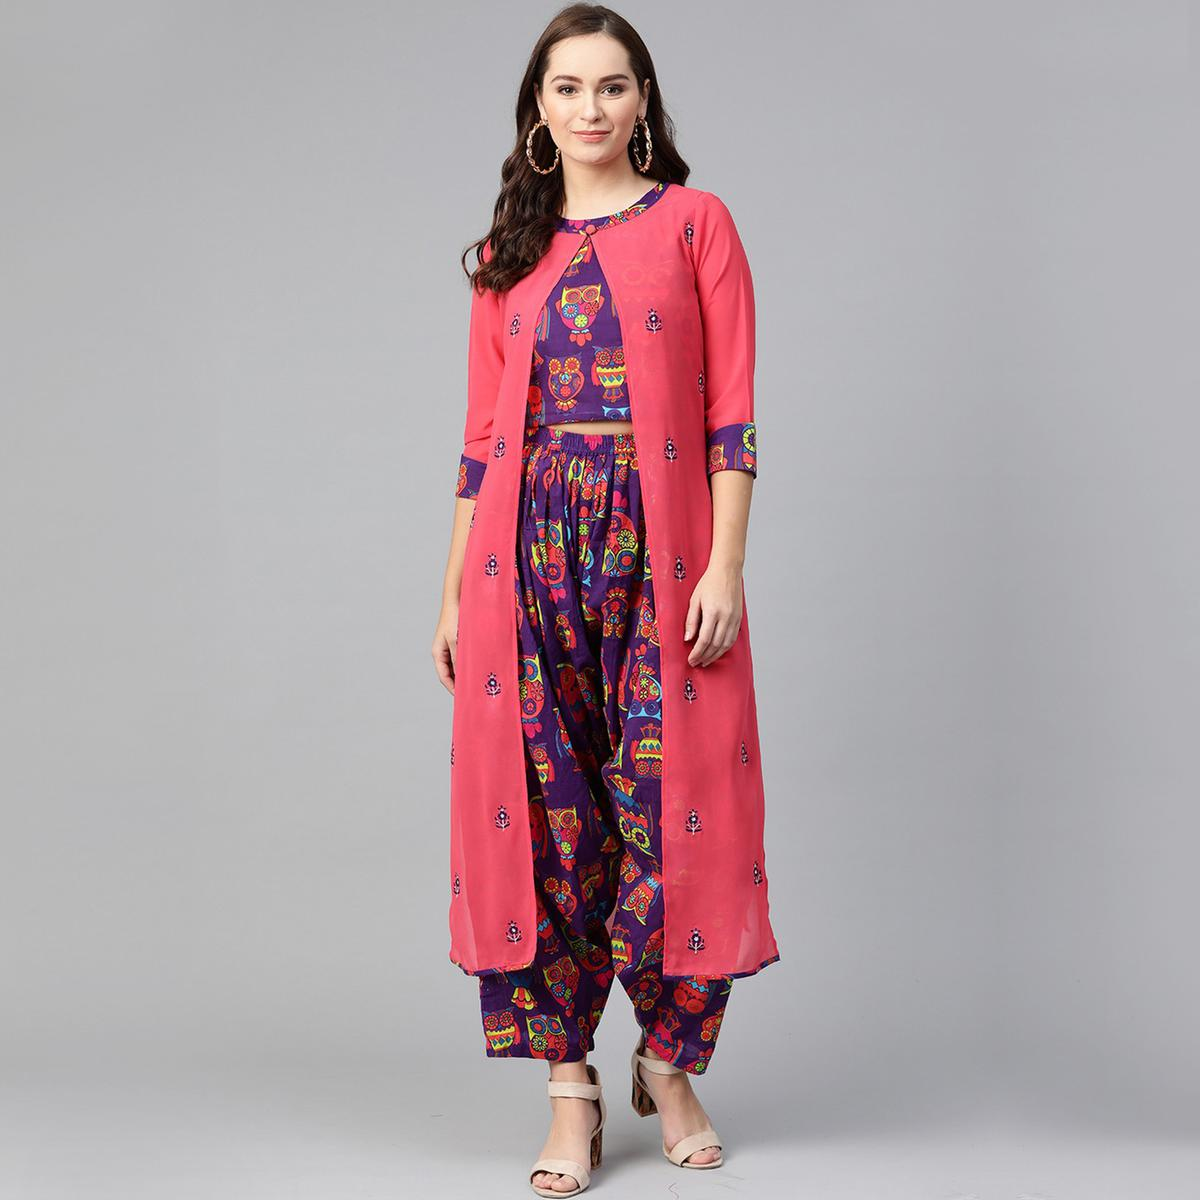 Opulent Purple-Pink Colored Party Wear Printed Cotton Georgette Top-Dhoti Set With Jacket